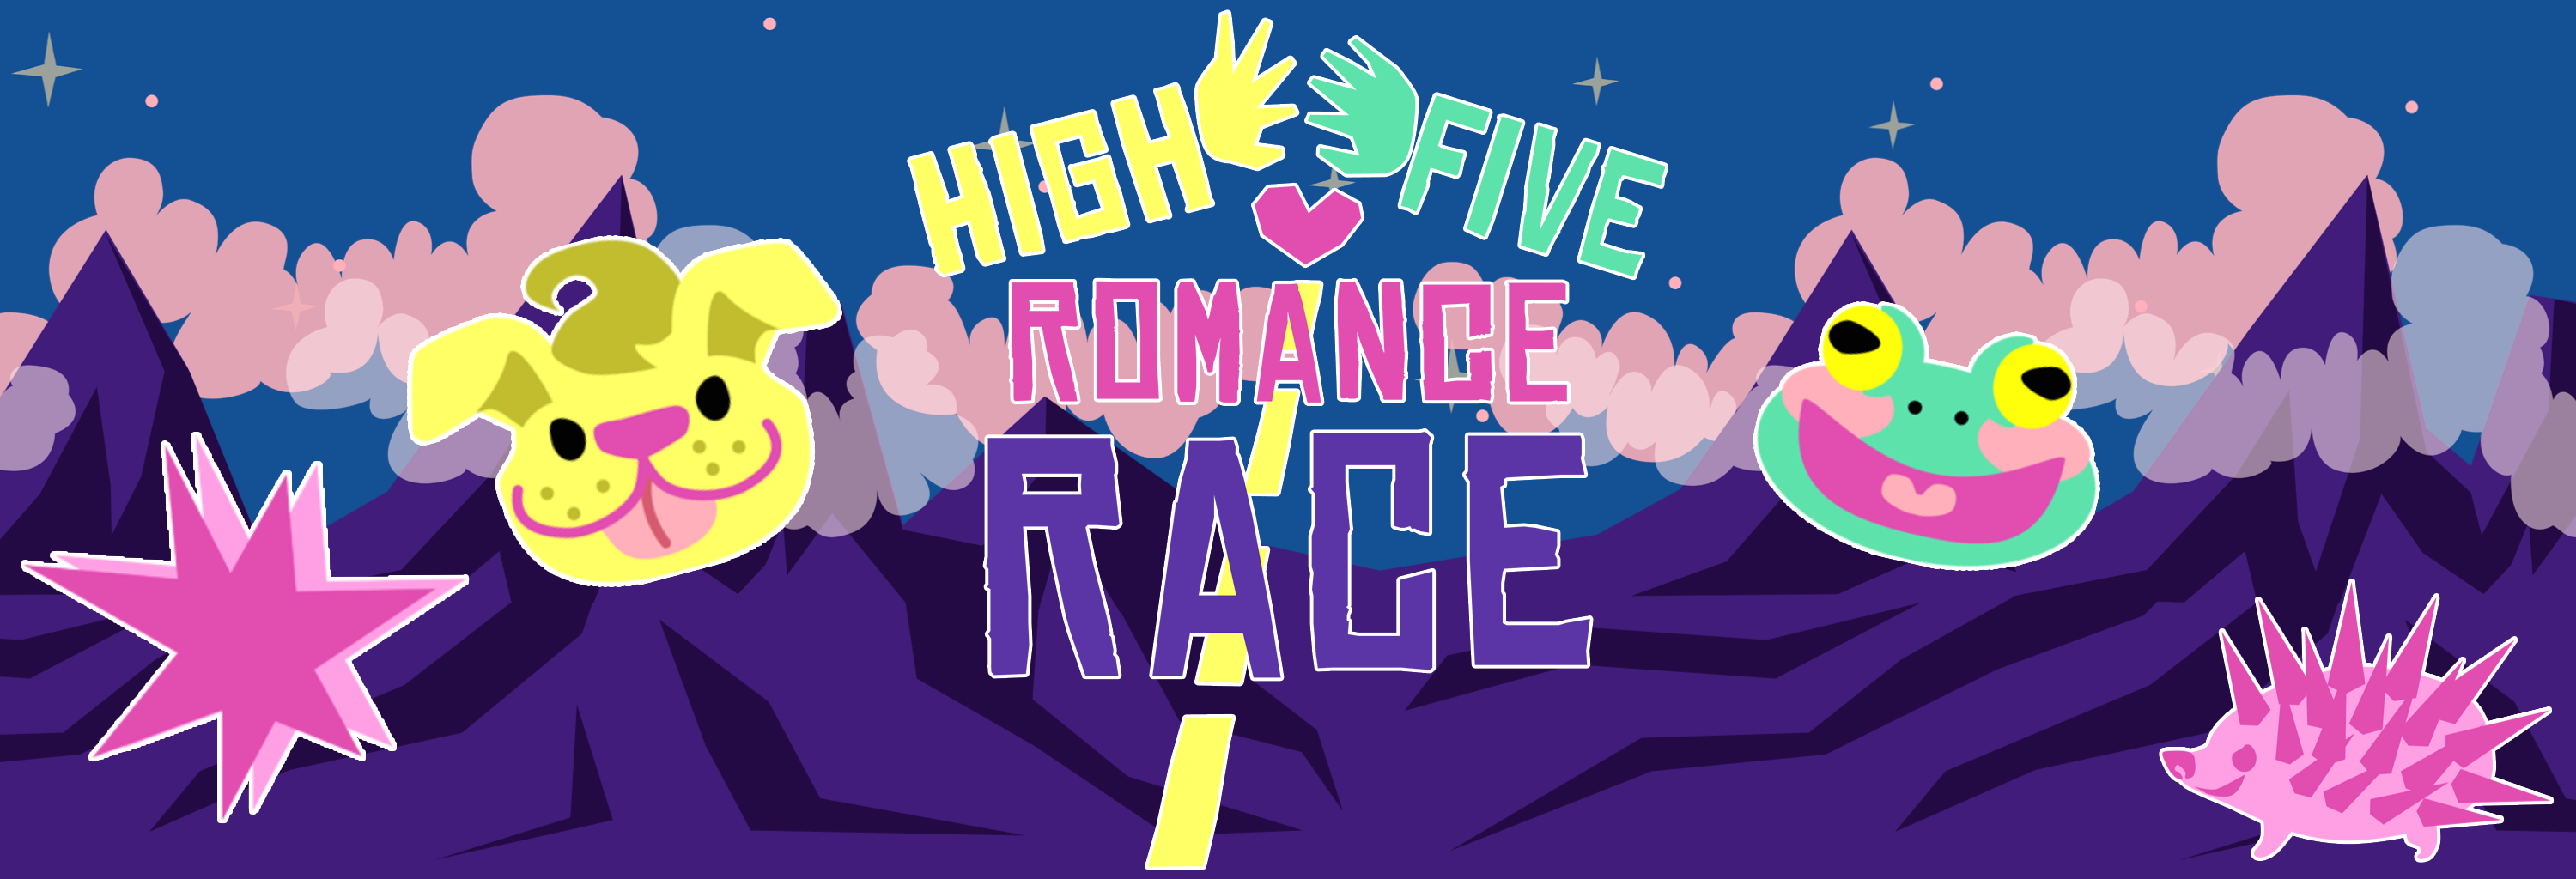 High Five Romance Race